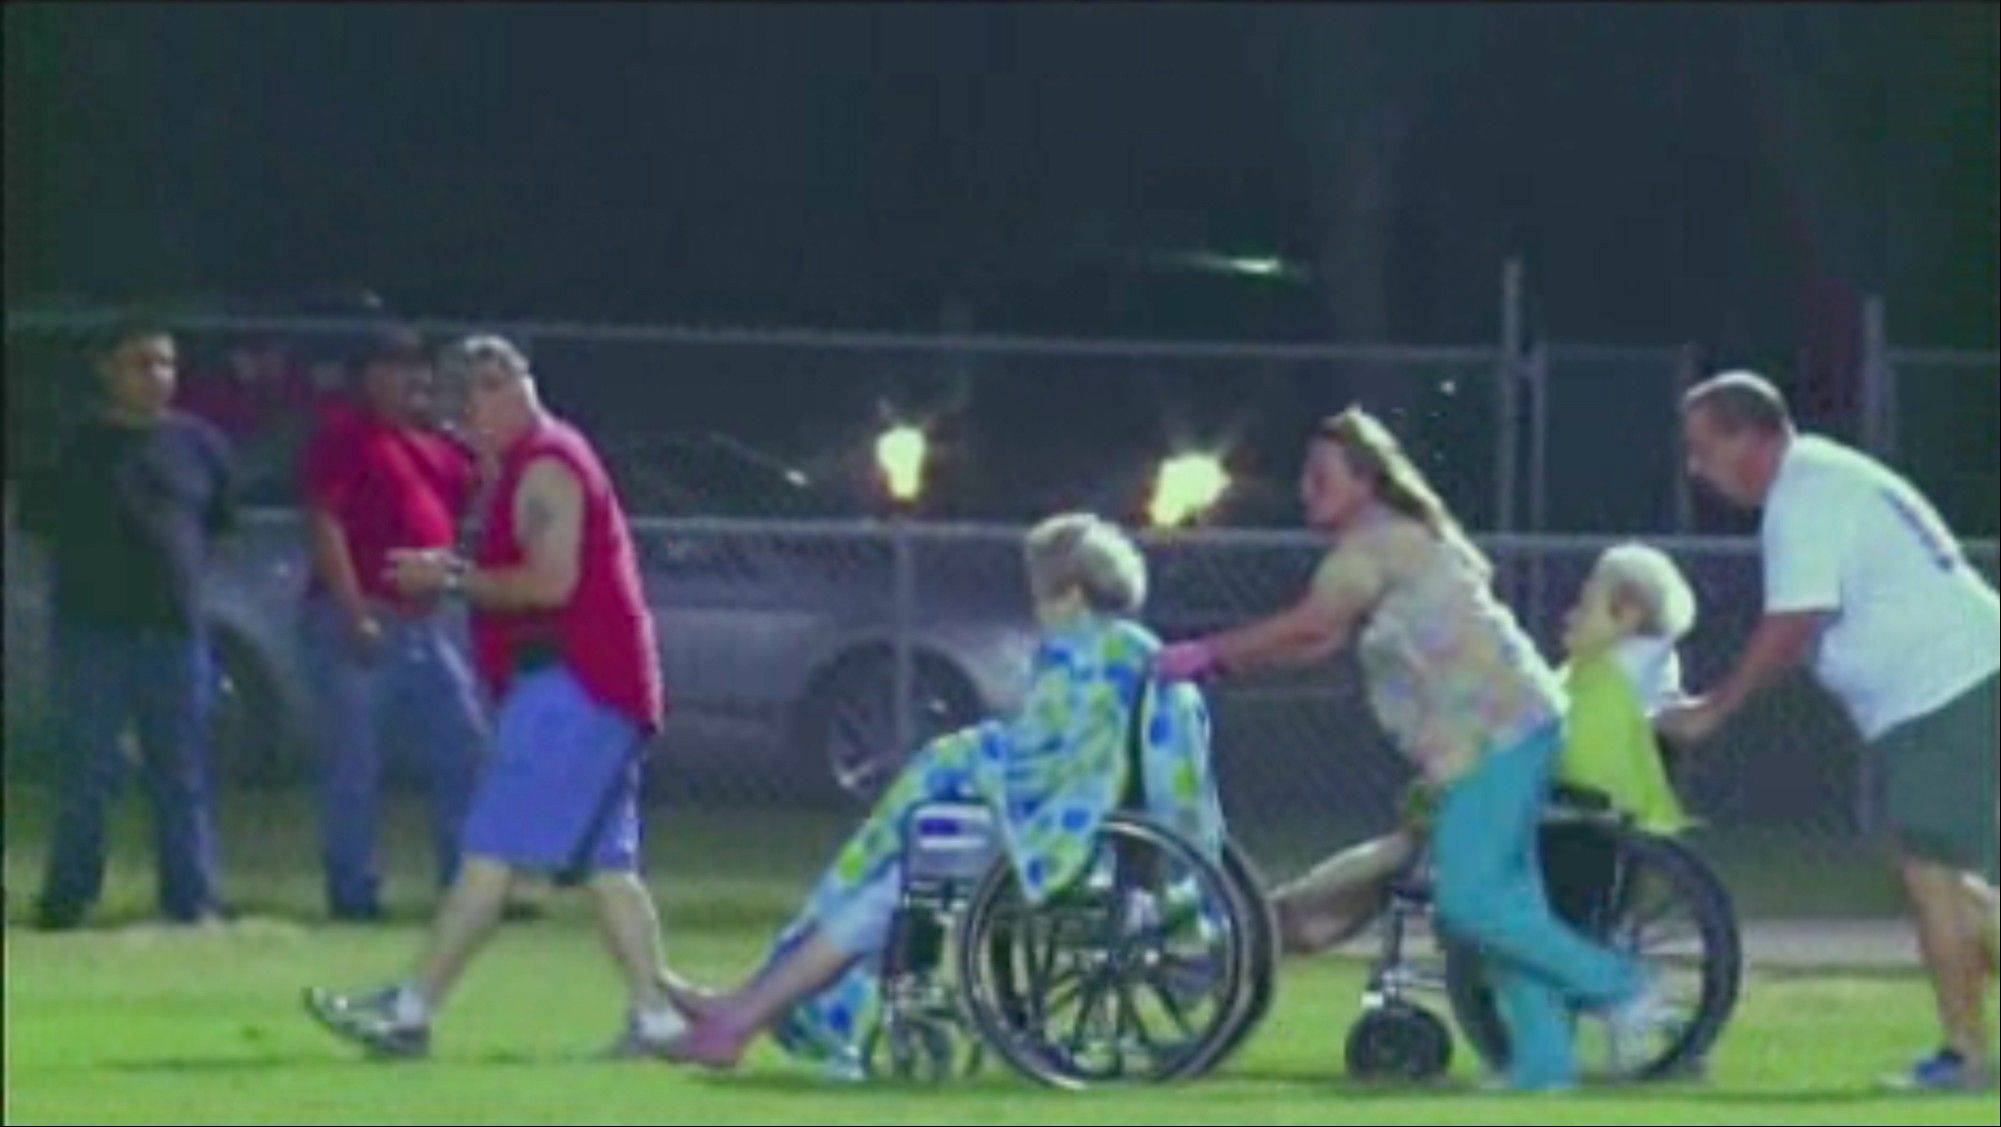 This video image provided by KWTX-TV shows some of the injured from an explosion at a fertilizer plant near Waco Wednesday night being pushed across the high school football field to waiting ambulances in West Texas. The blast injured dozens of people and sent flames shooting high into the night sky, leaving the factory a smoldering ruin and causing major damage to surrounding buildings.